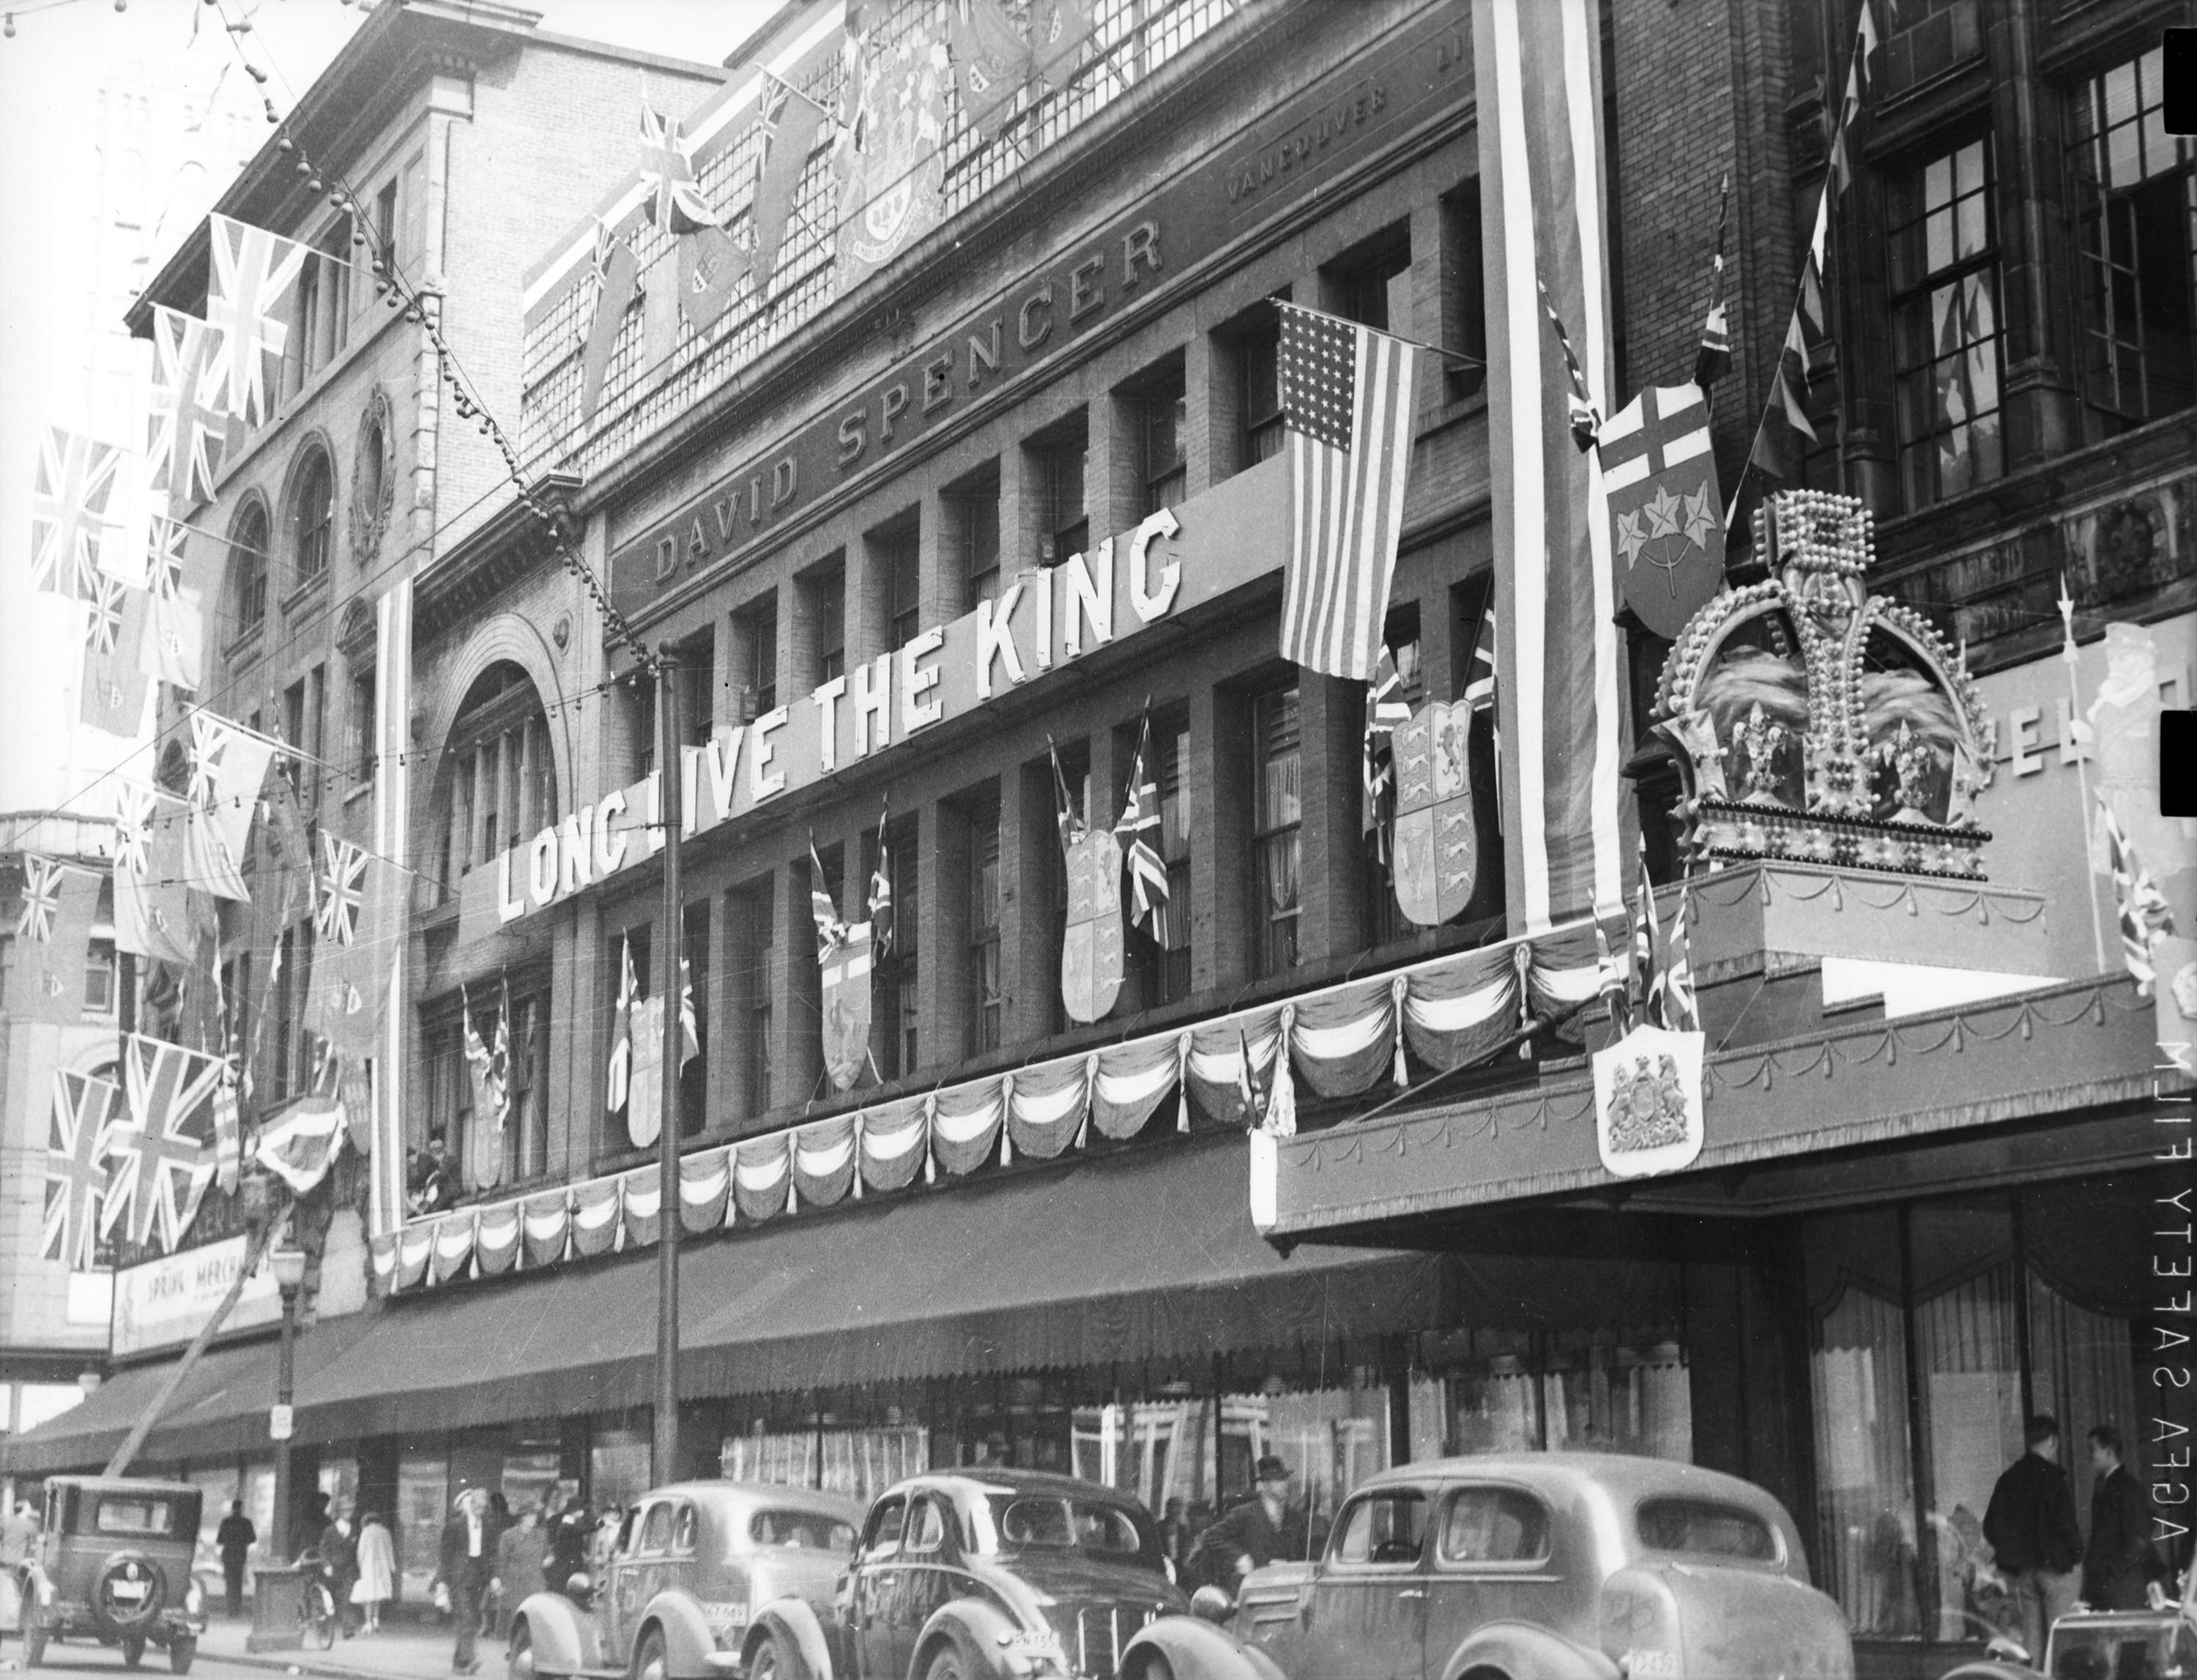 Spencer's Department Store decorated for visit of King George VI and Queen Elizabeth in 1939 (Vancouver Committee for the Reception of their Majesties)